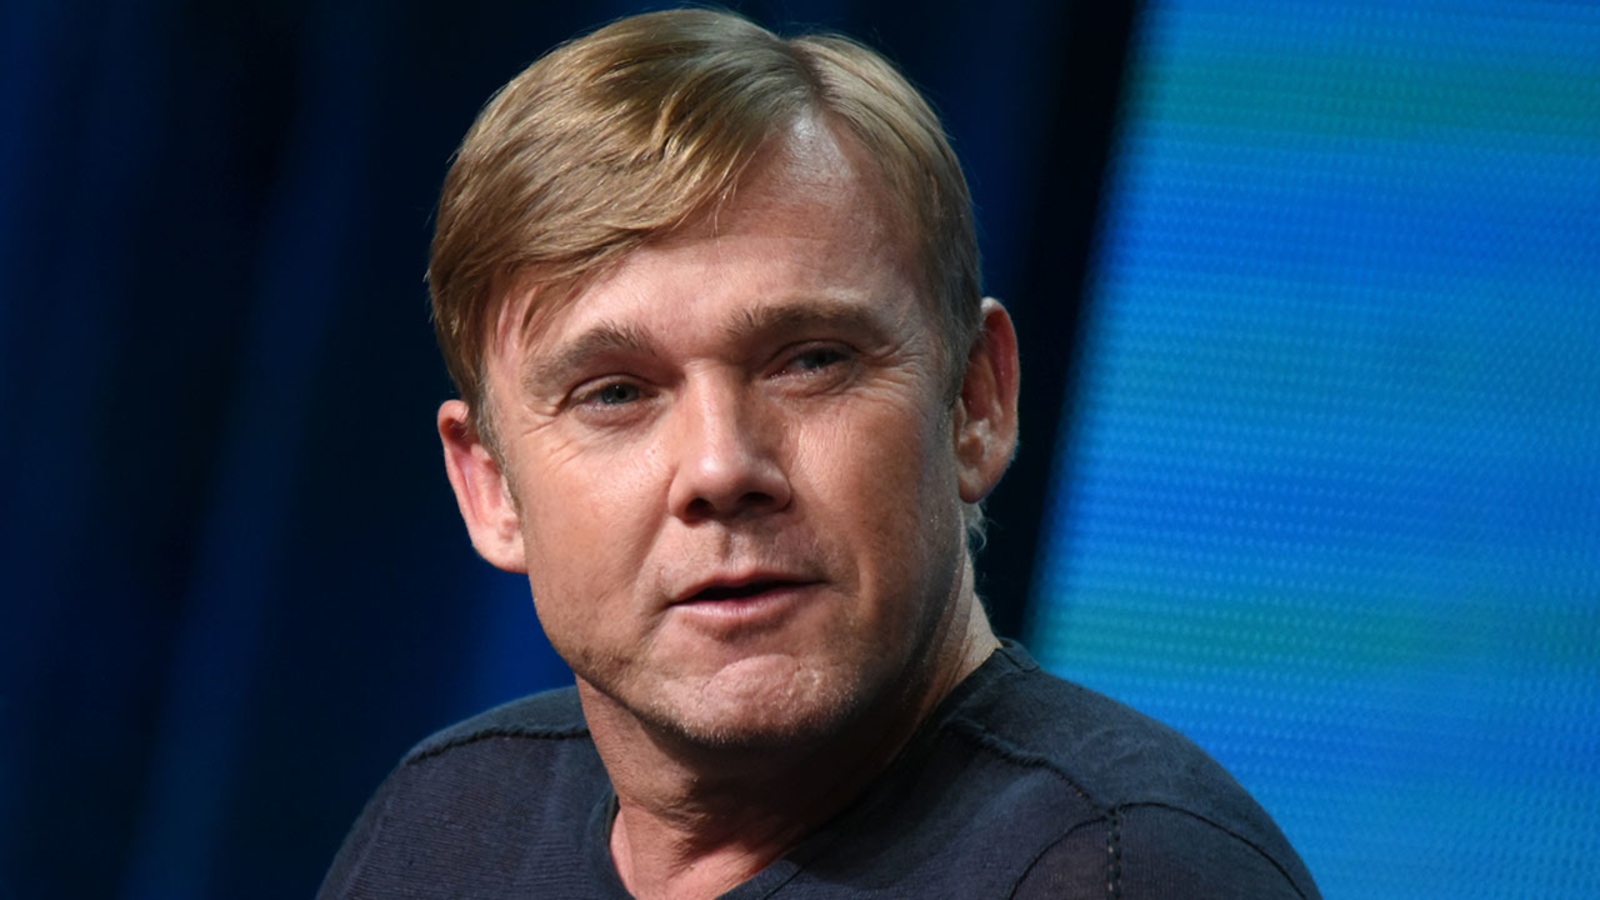 Rick Schroder arrested on suspicion of domestic violence in Topanga for 2nd time in 30 days